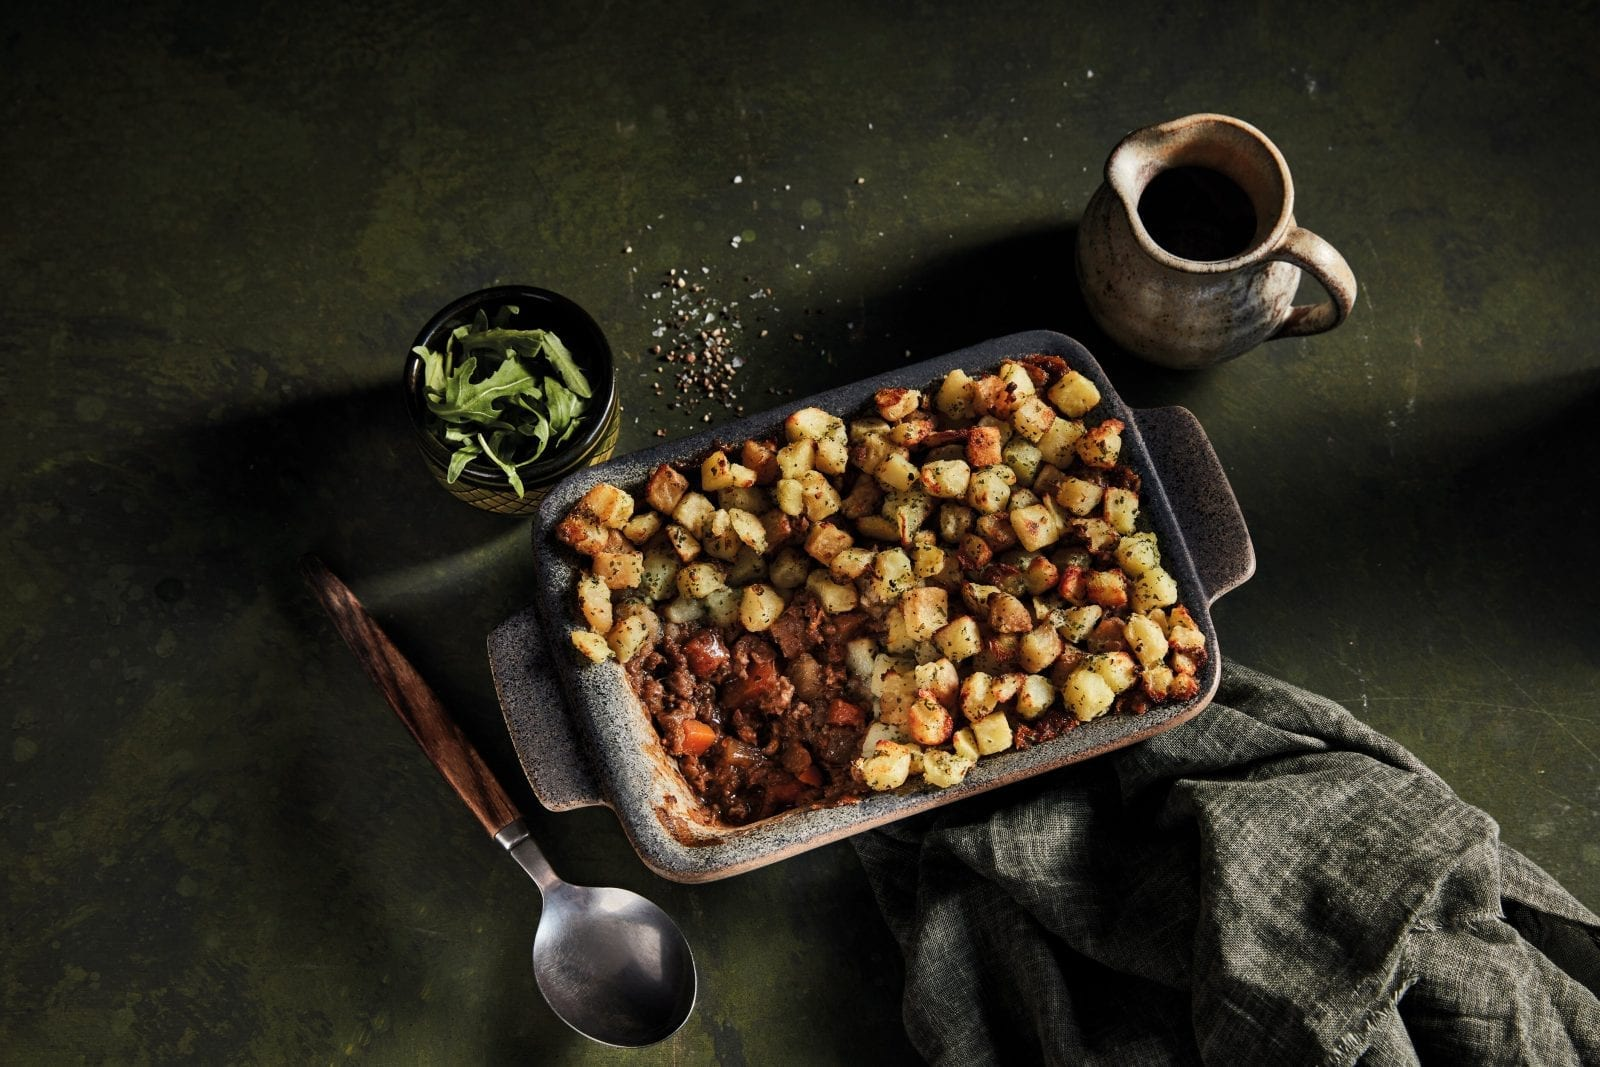 Iceland launches new luxury festive ready meal range with Pigs in Blanket Mac & Cheese, The Manc